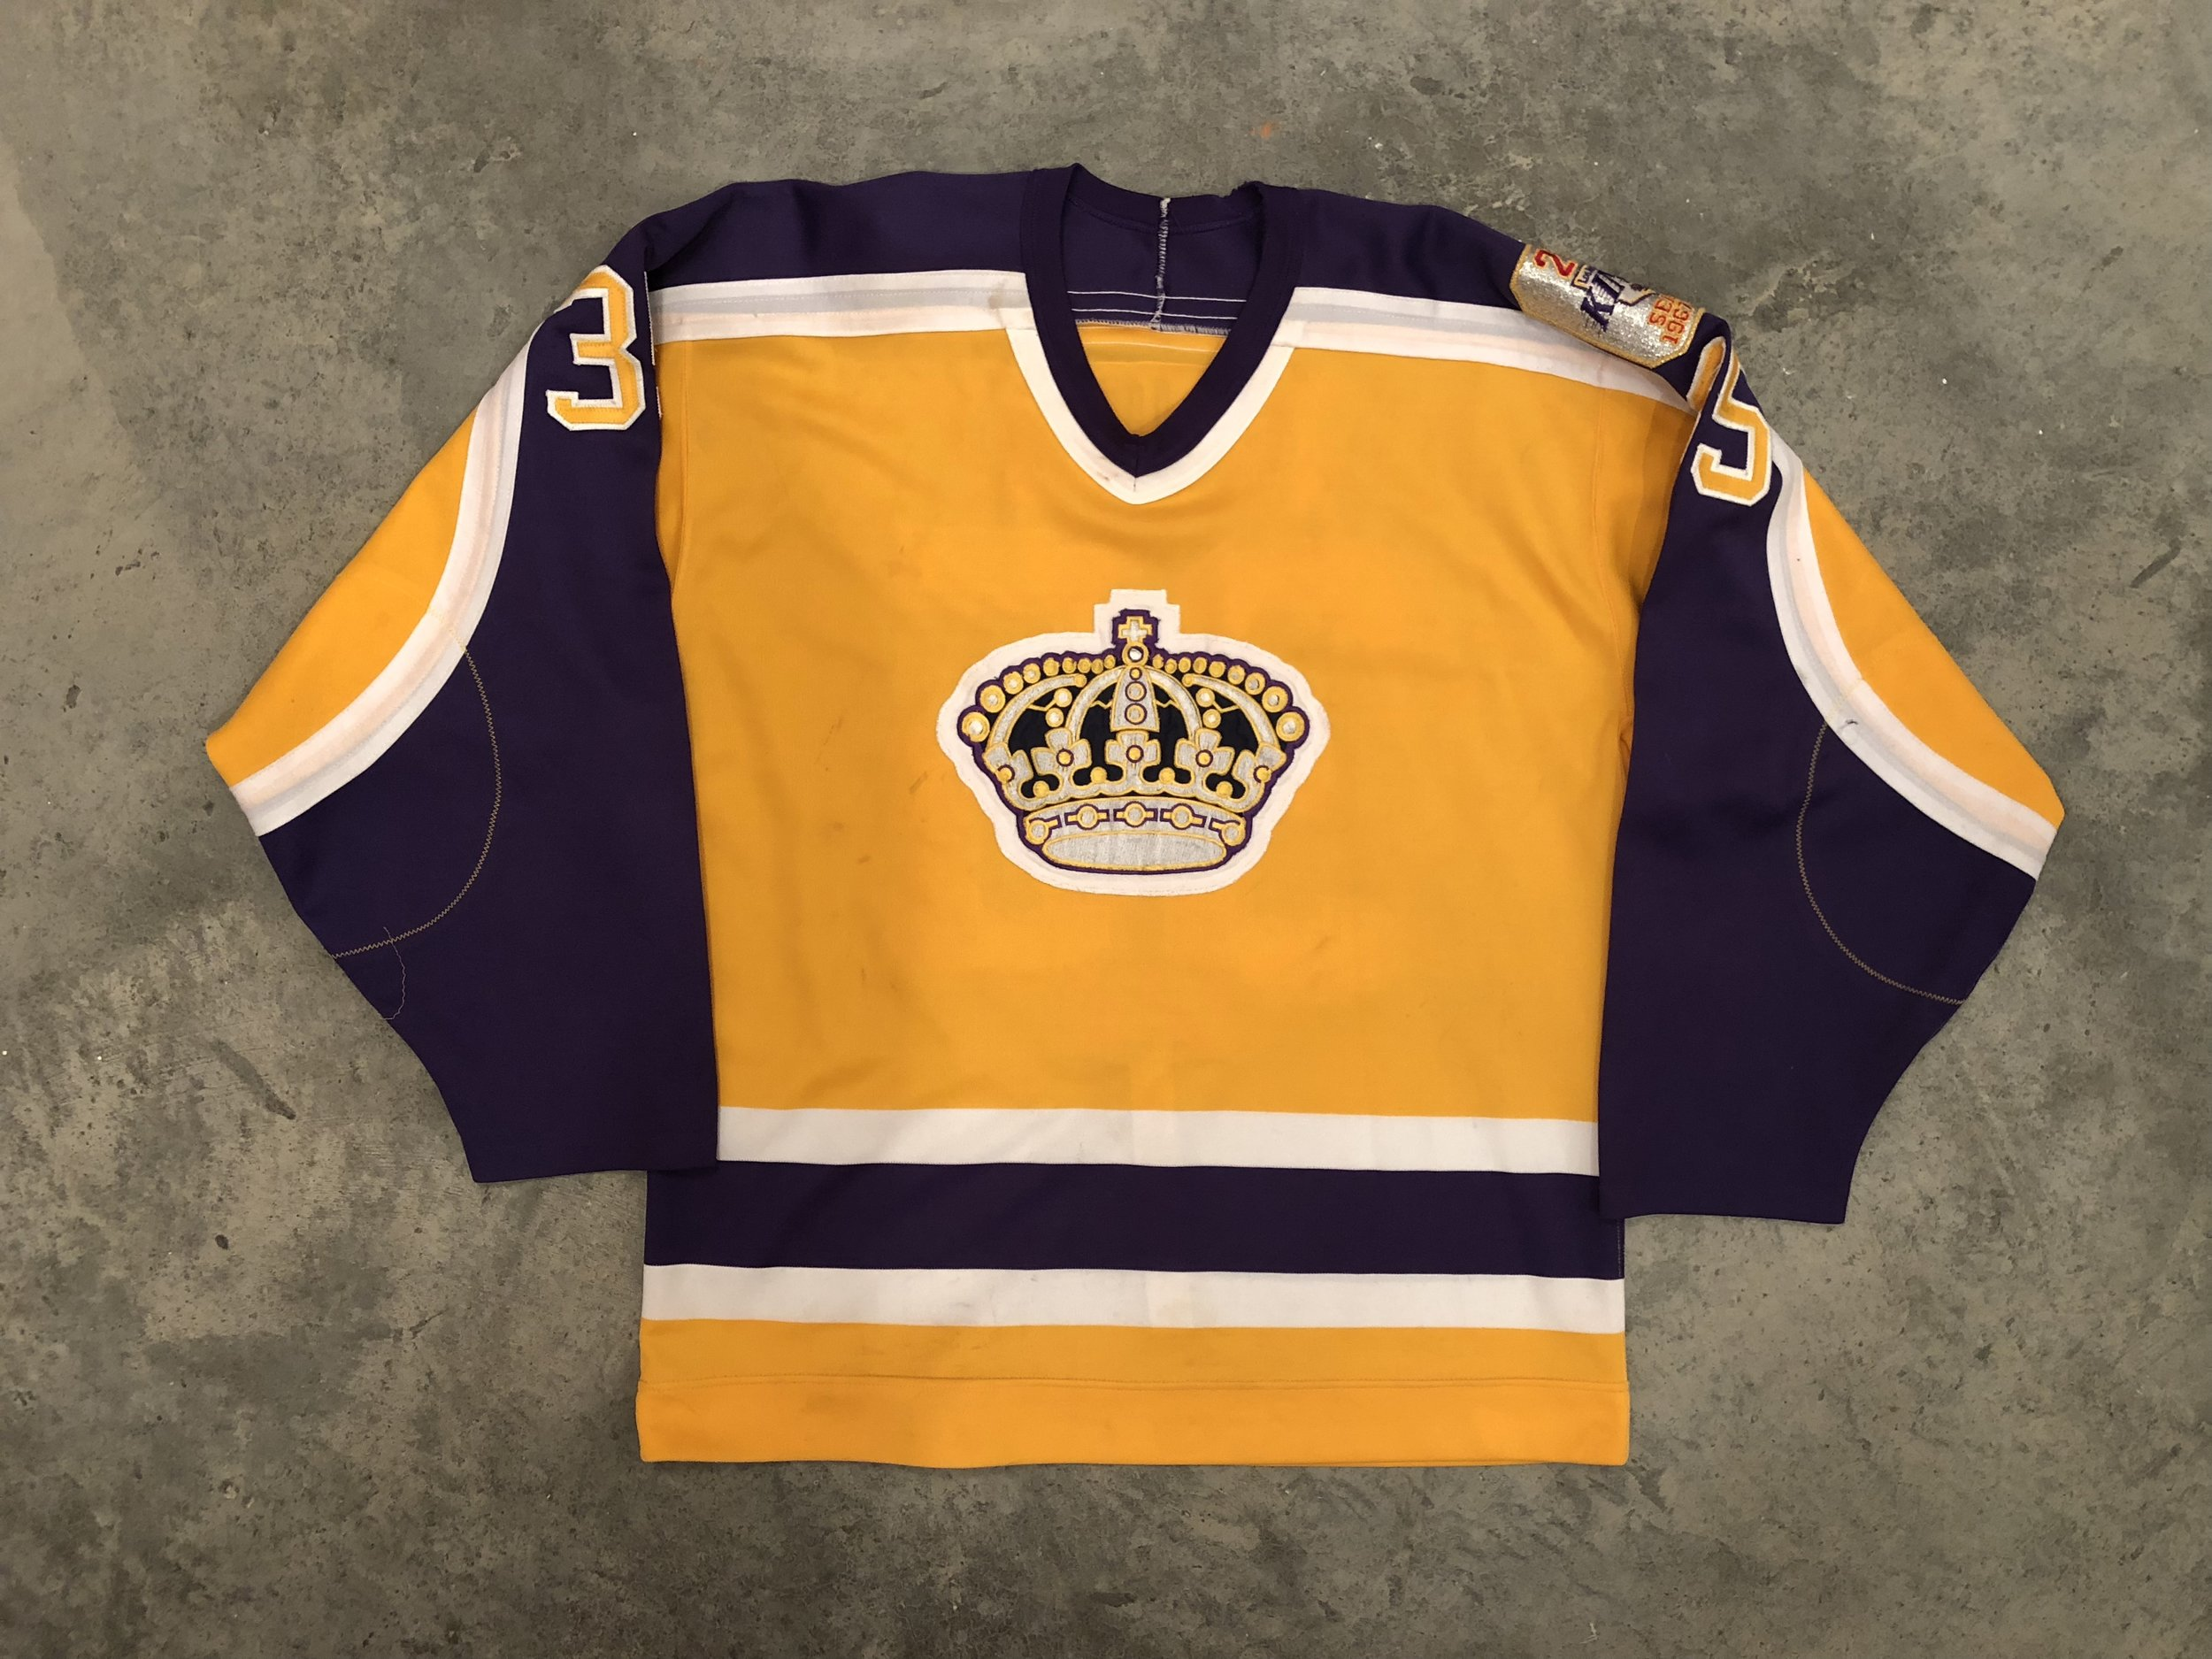 1986-87 Darren Eliot game worn home jersey with Kings 20th anniversary patch